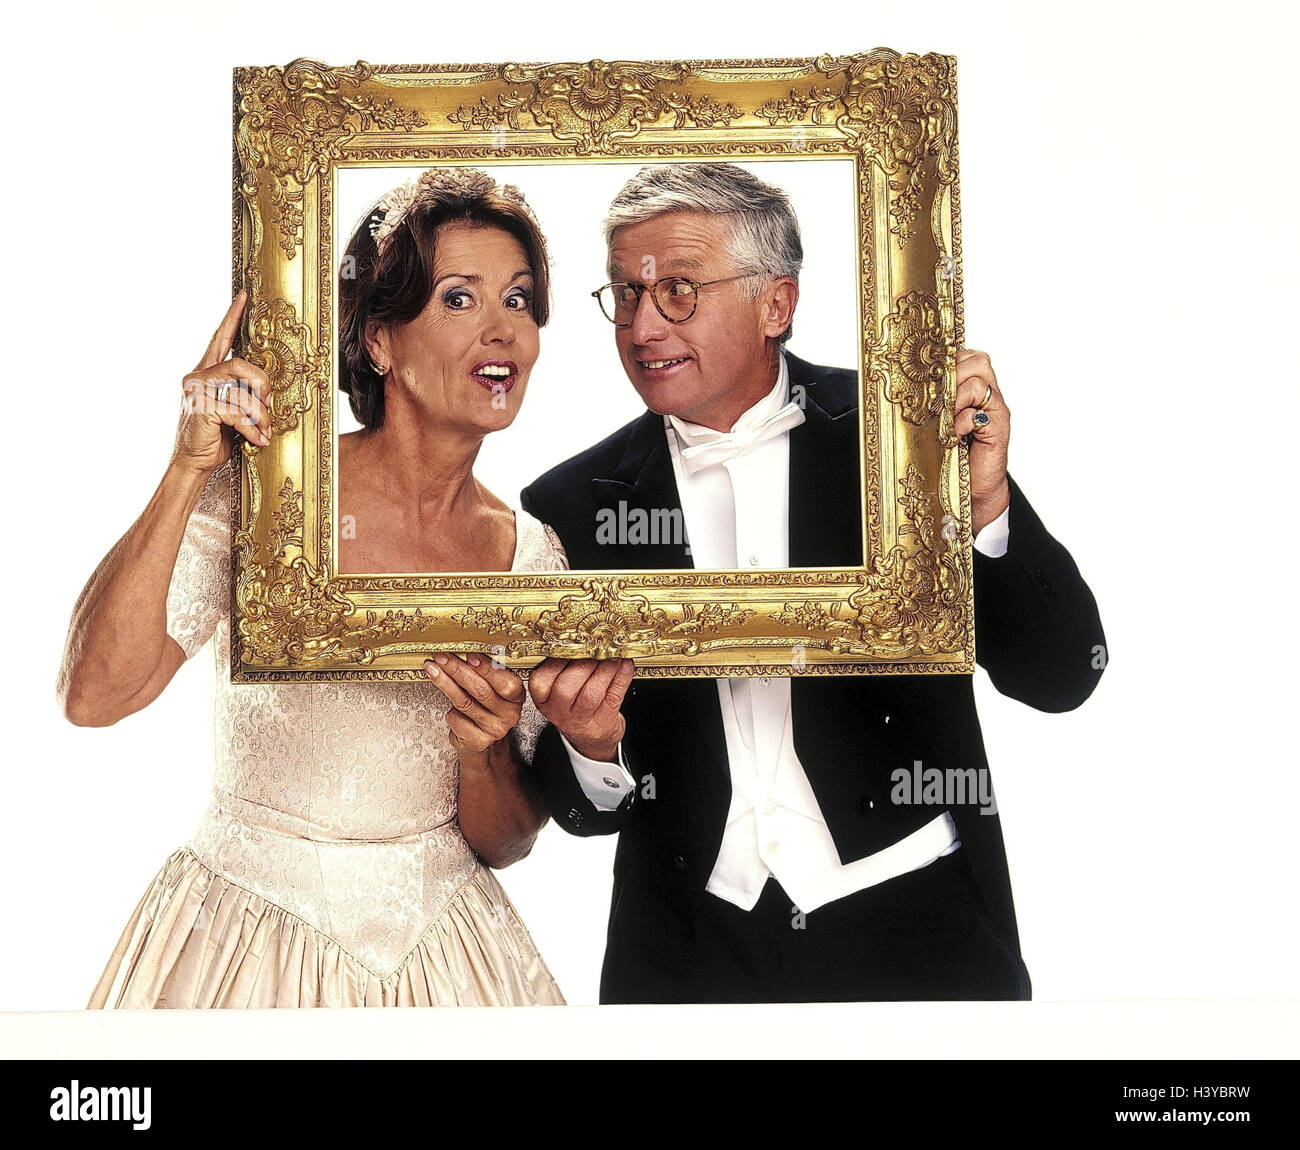 Wedding, bride and groom, picture frame, half portrait, marriage ...